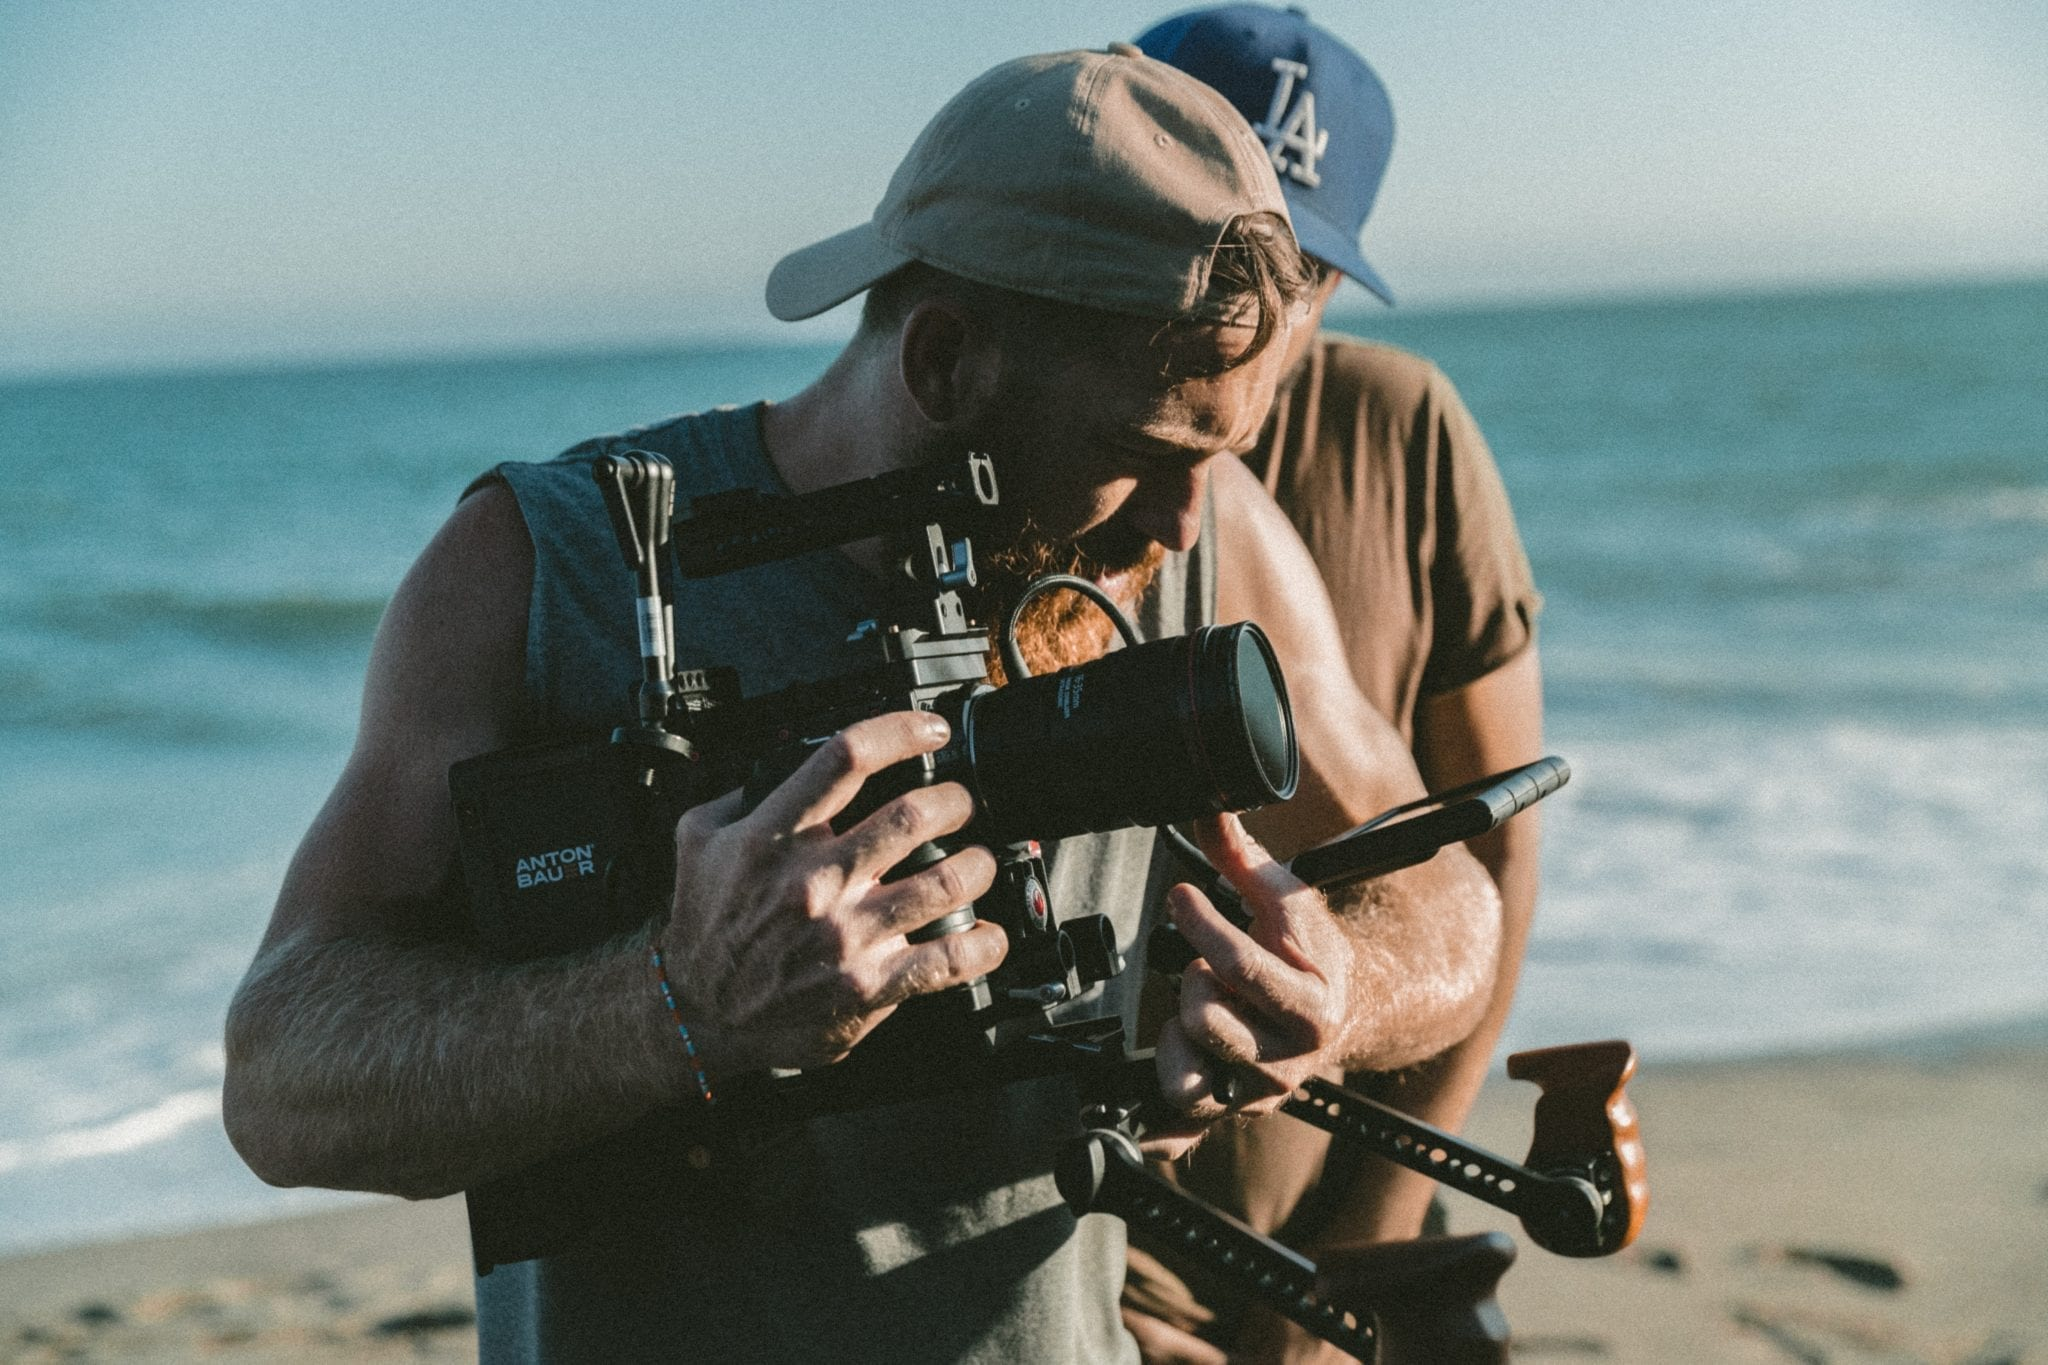 A freelance filmmaker. Start your career in the film industry